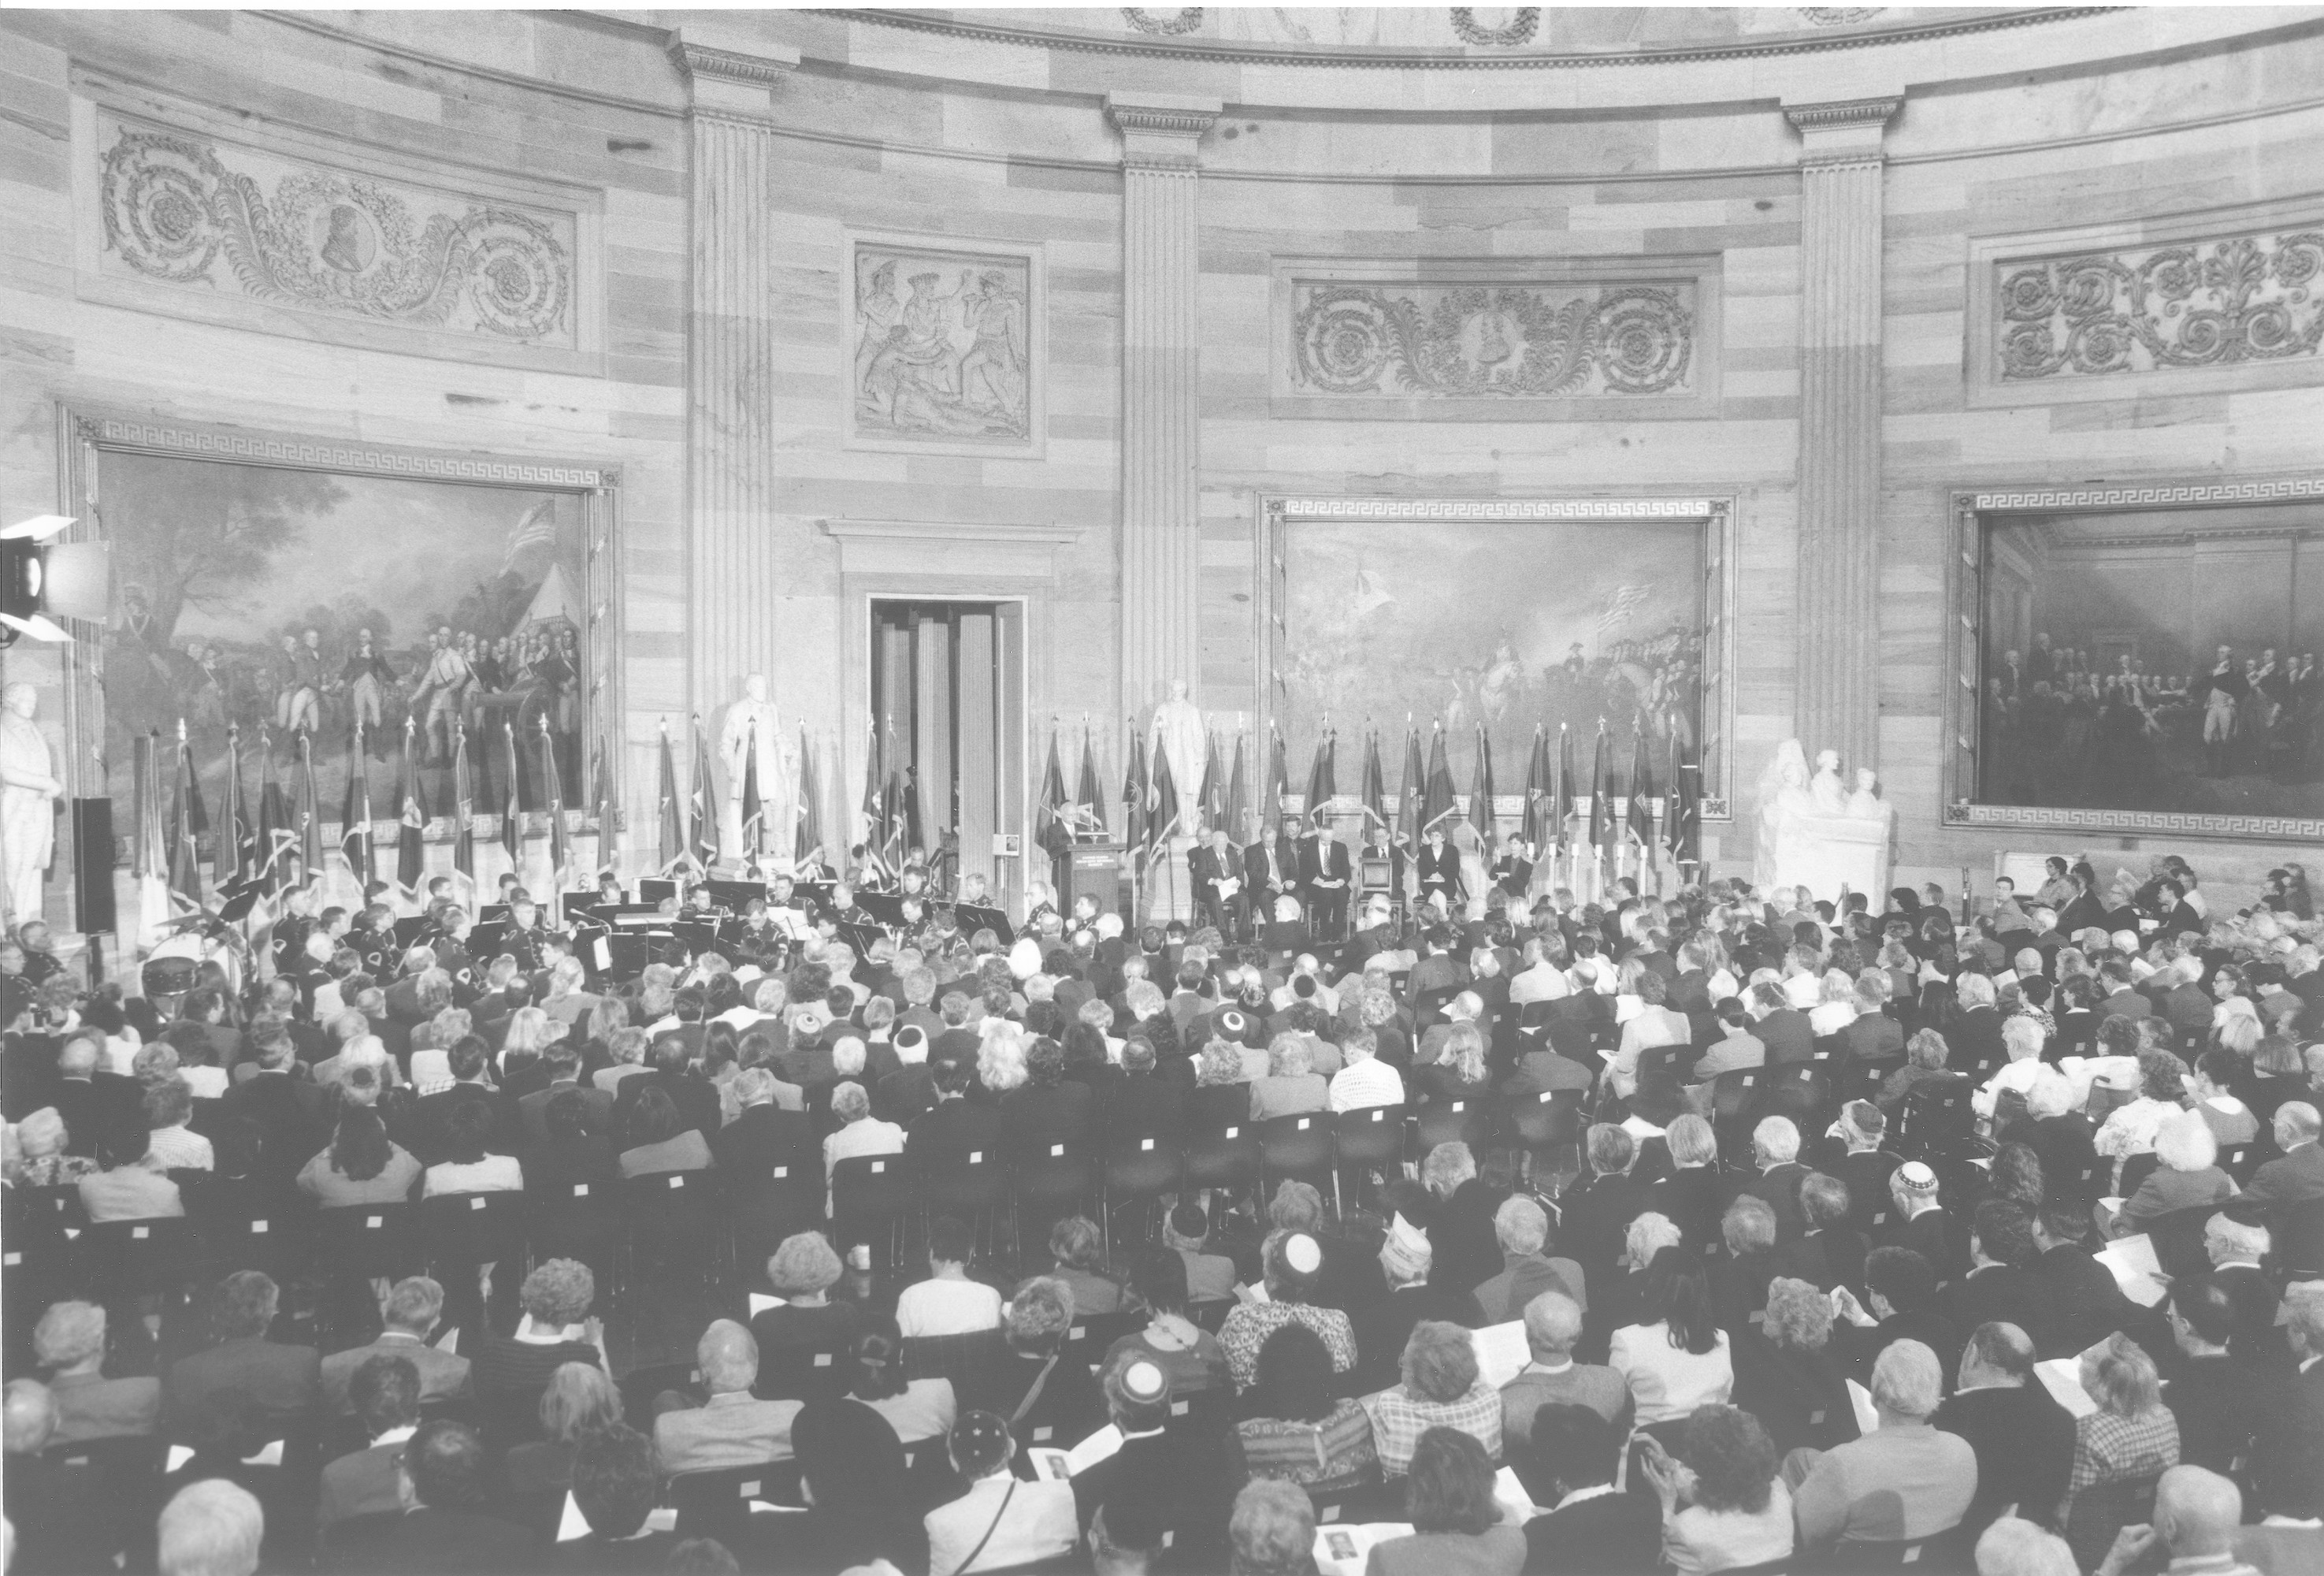 """A large crowd attends the 2000 Days of Remembrance ceremony in the capitol rotunda.   The theme of this year's commemoration was """"The Holocaust and the New Century: The Imperative to Remember.""""  Swedish Prime Minister Göran Persson delivered the keynote address, and Nobel laureate Elie Wiesel and U.S. Secretary of the Treasury Stuart E. Eizenstat were recognized for their extraordinary contributions."""